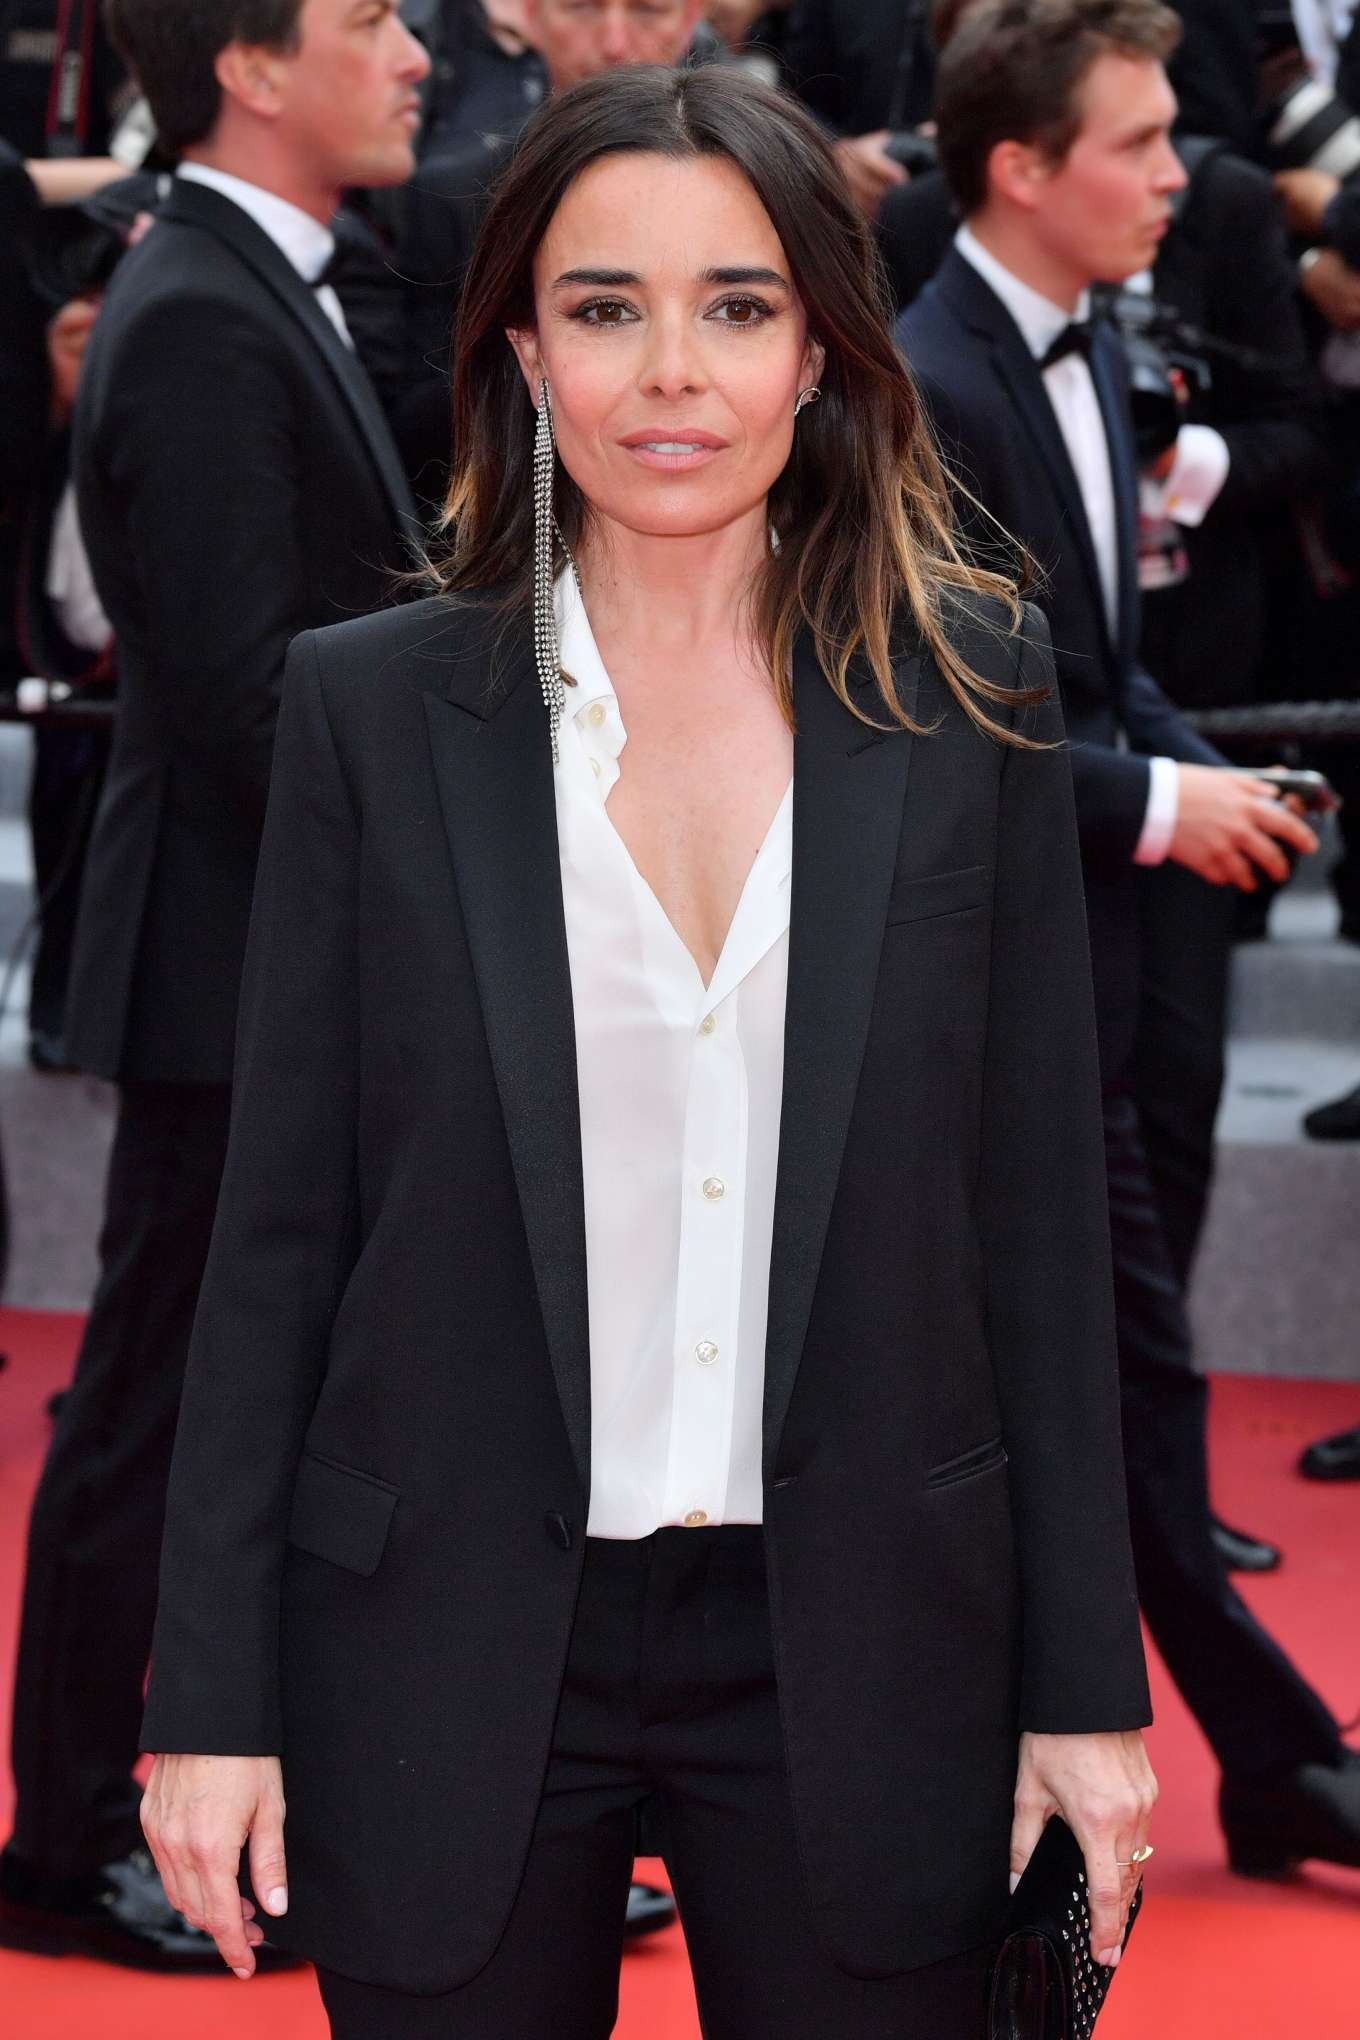 Elodie Bouchez - 'La Belle Epoque' Premiere at 2019 Cannes Film Festival